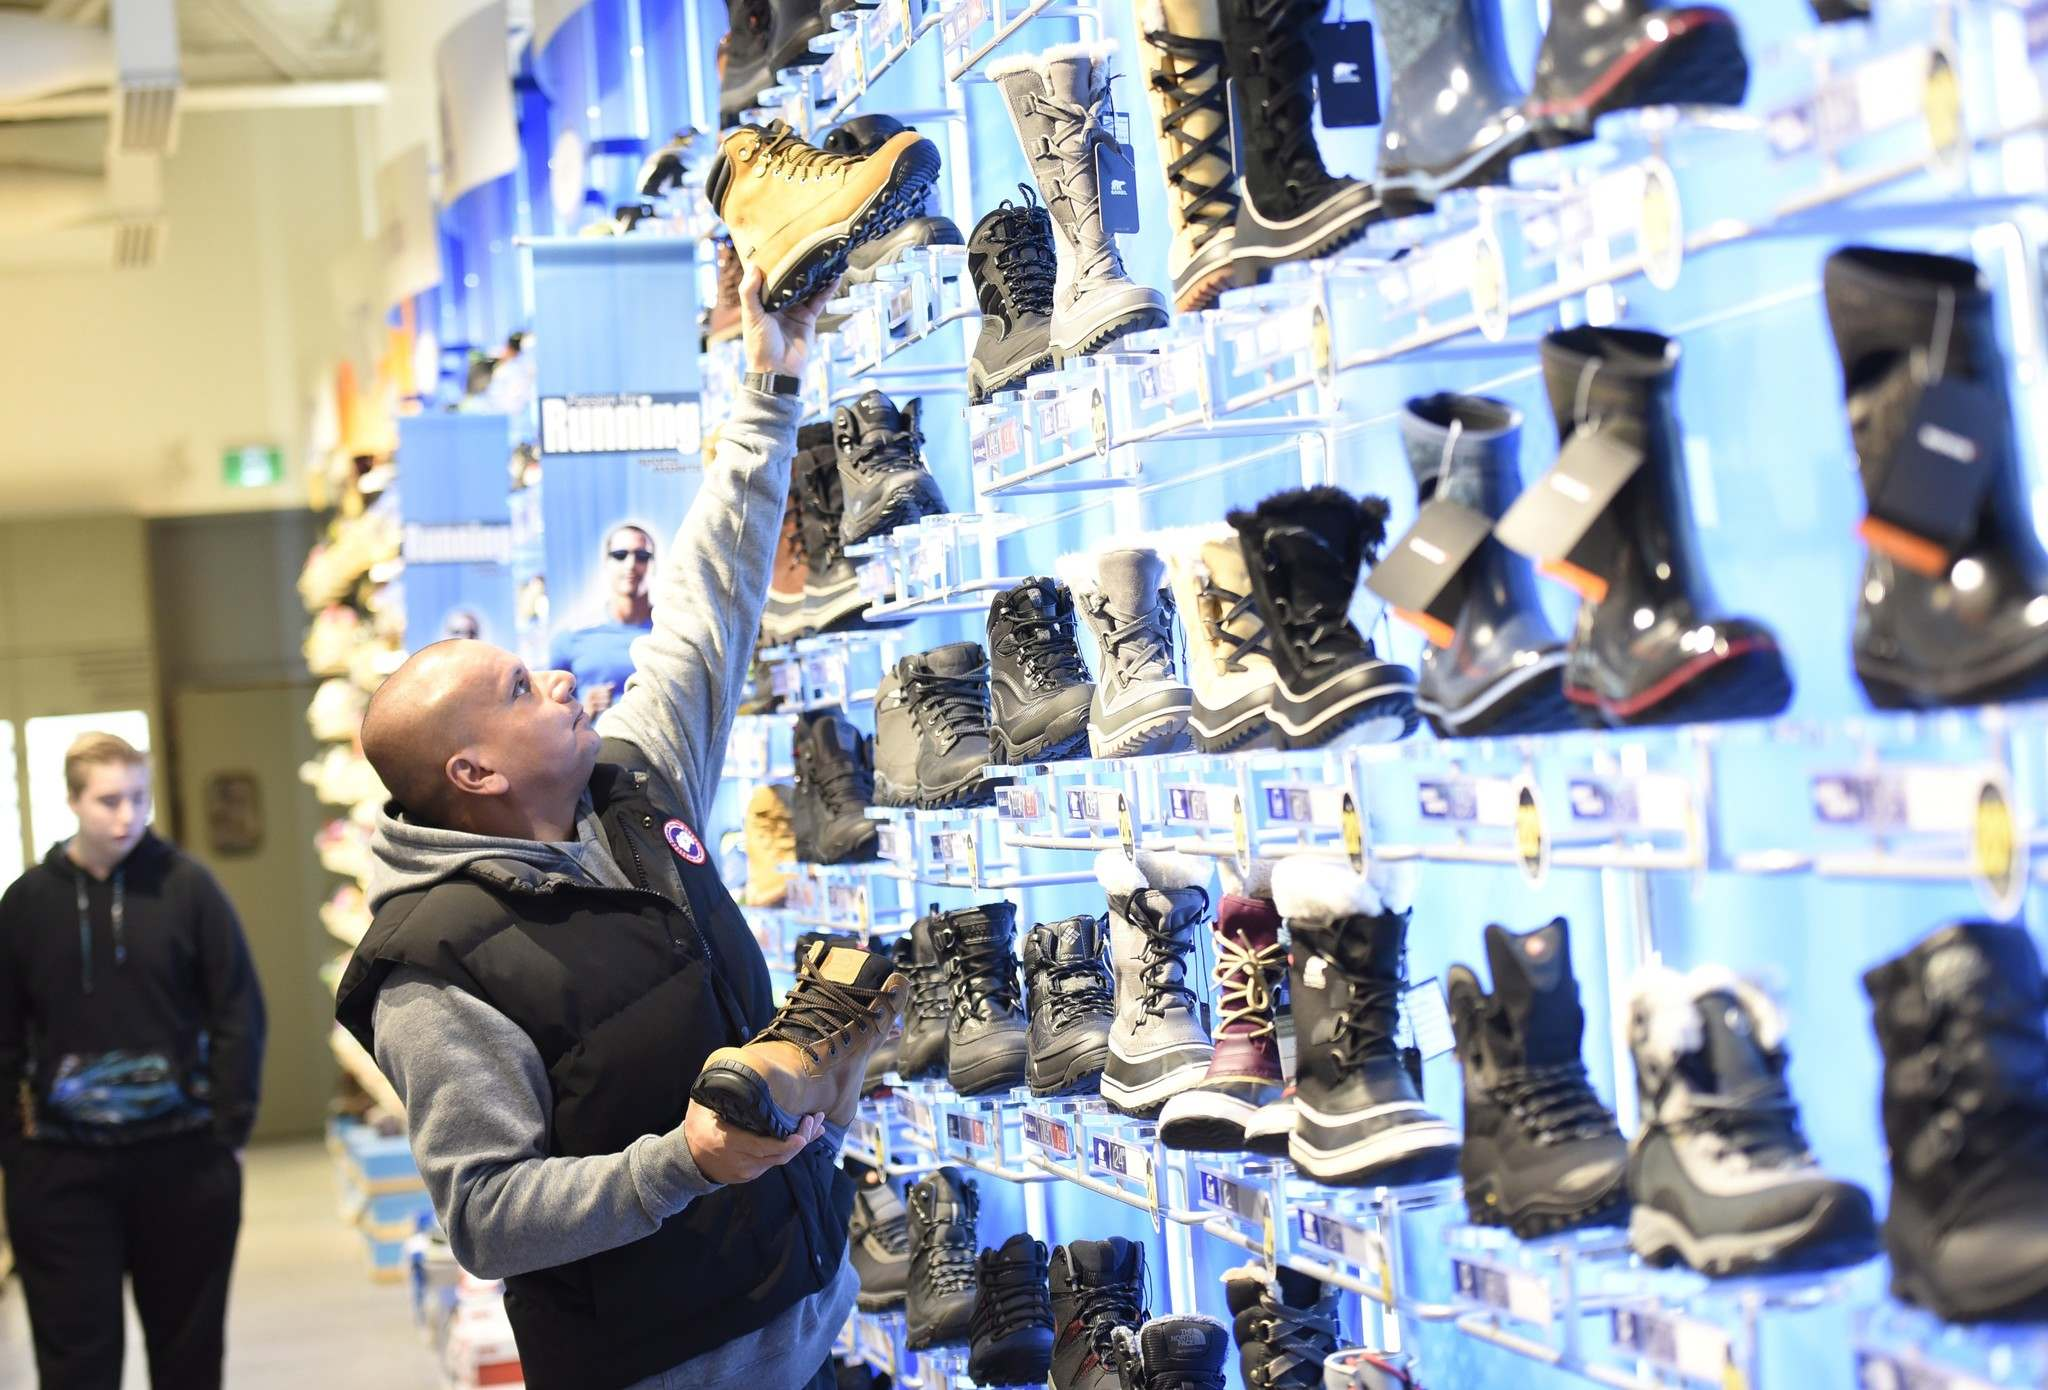 JUSTIN TANG / CANADIAN PRESS FILES</p><p>Manitoba's retailers reported $1.65 billion worth of sales in January, up from just over $1.61 billion in December.</p>